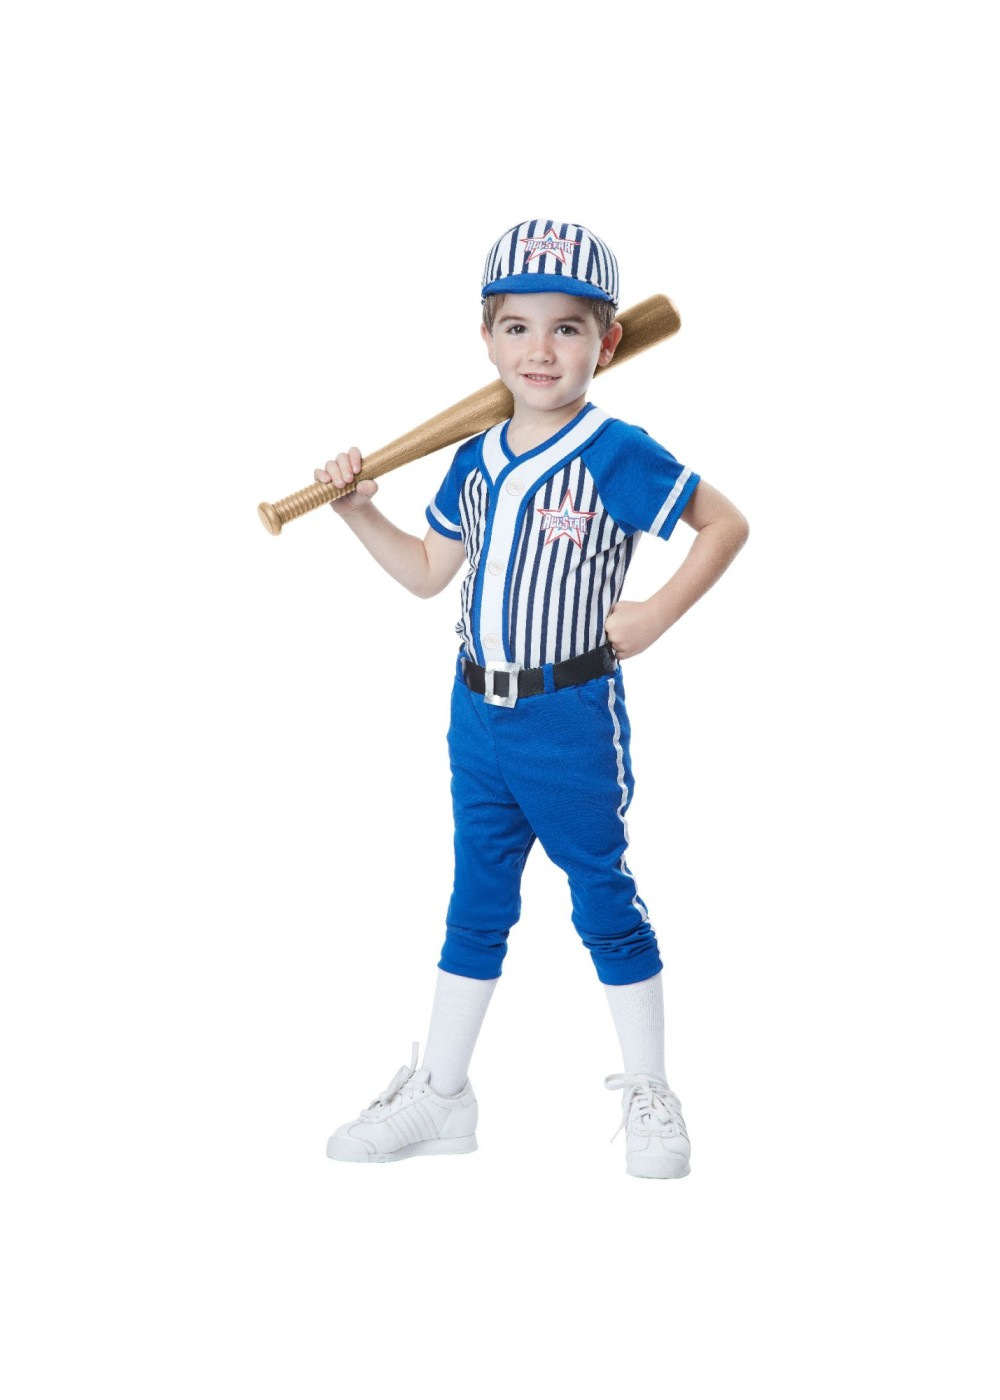 Baseball Player Baby Boys Toddler Costume Sports Costumes